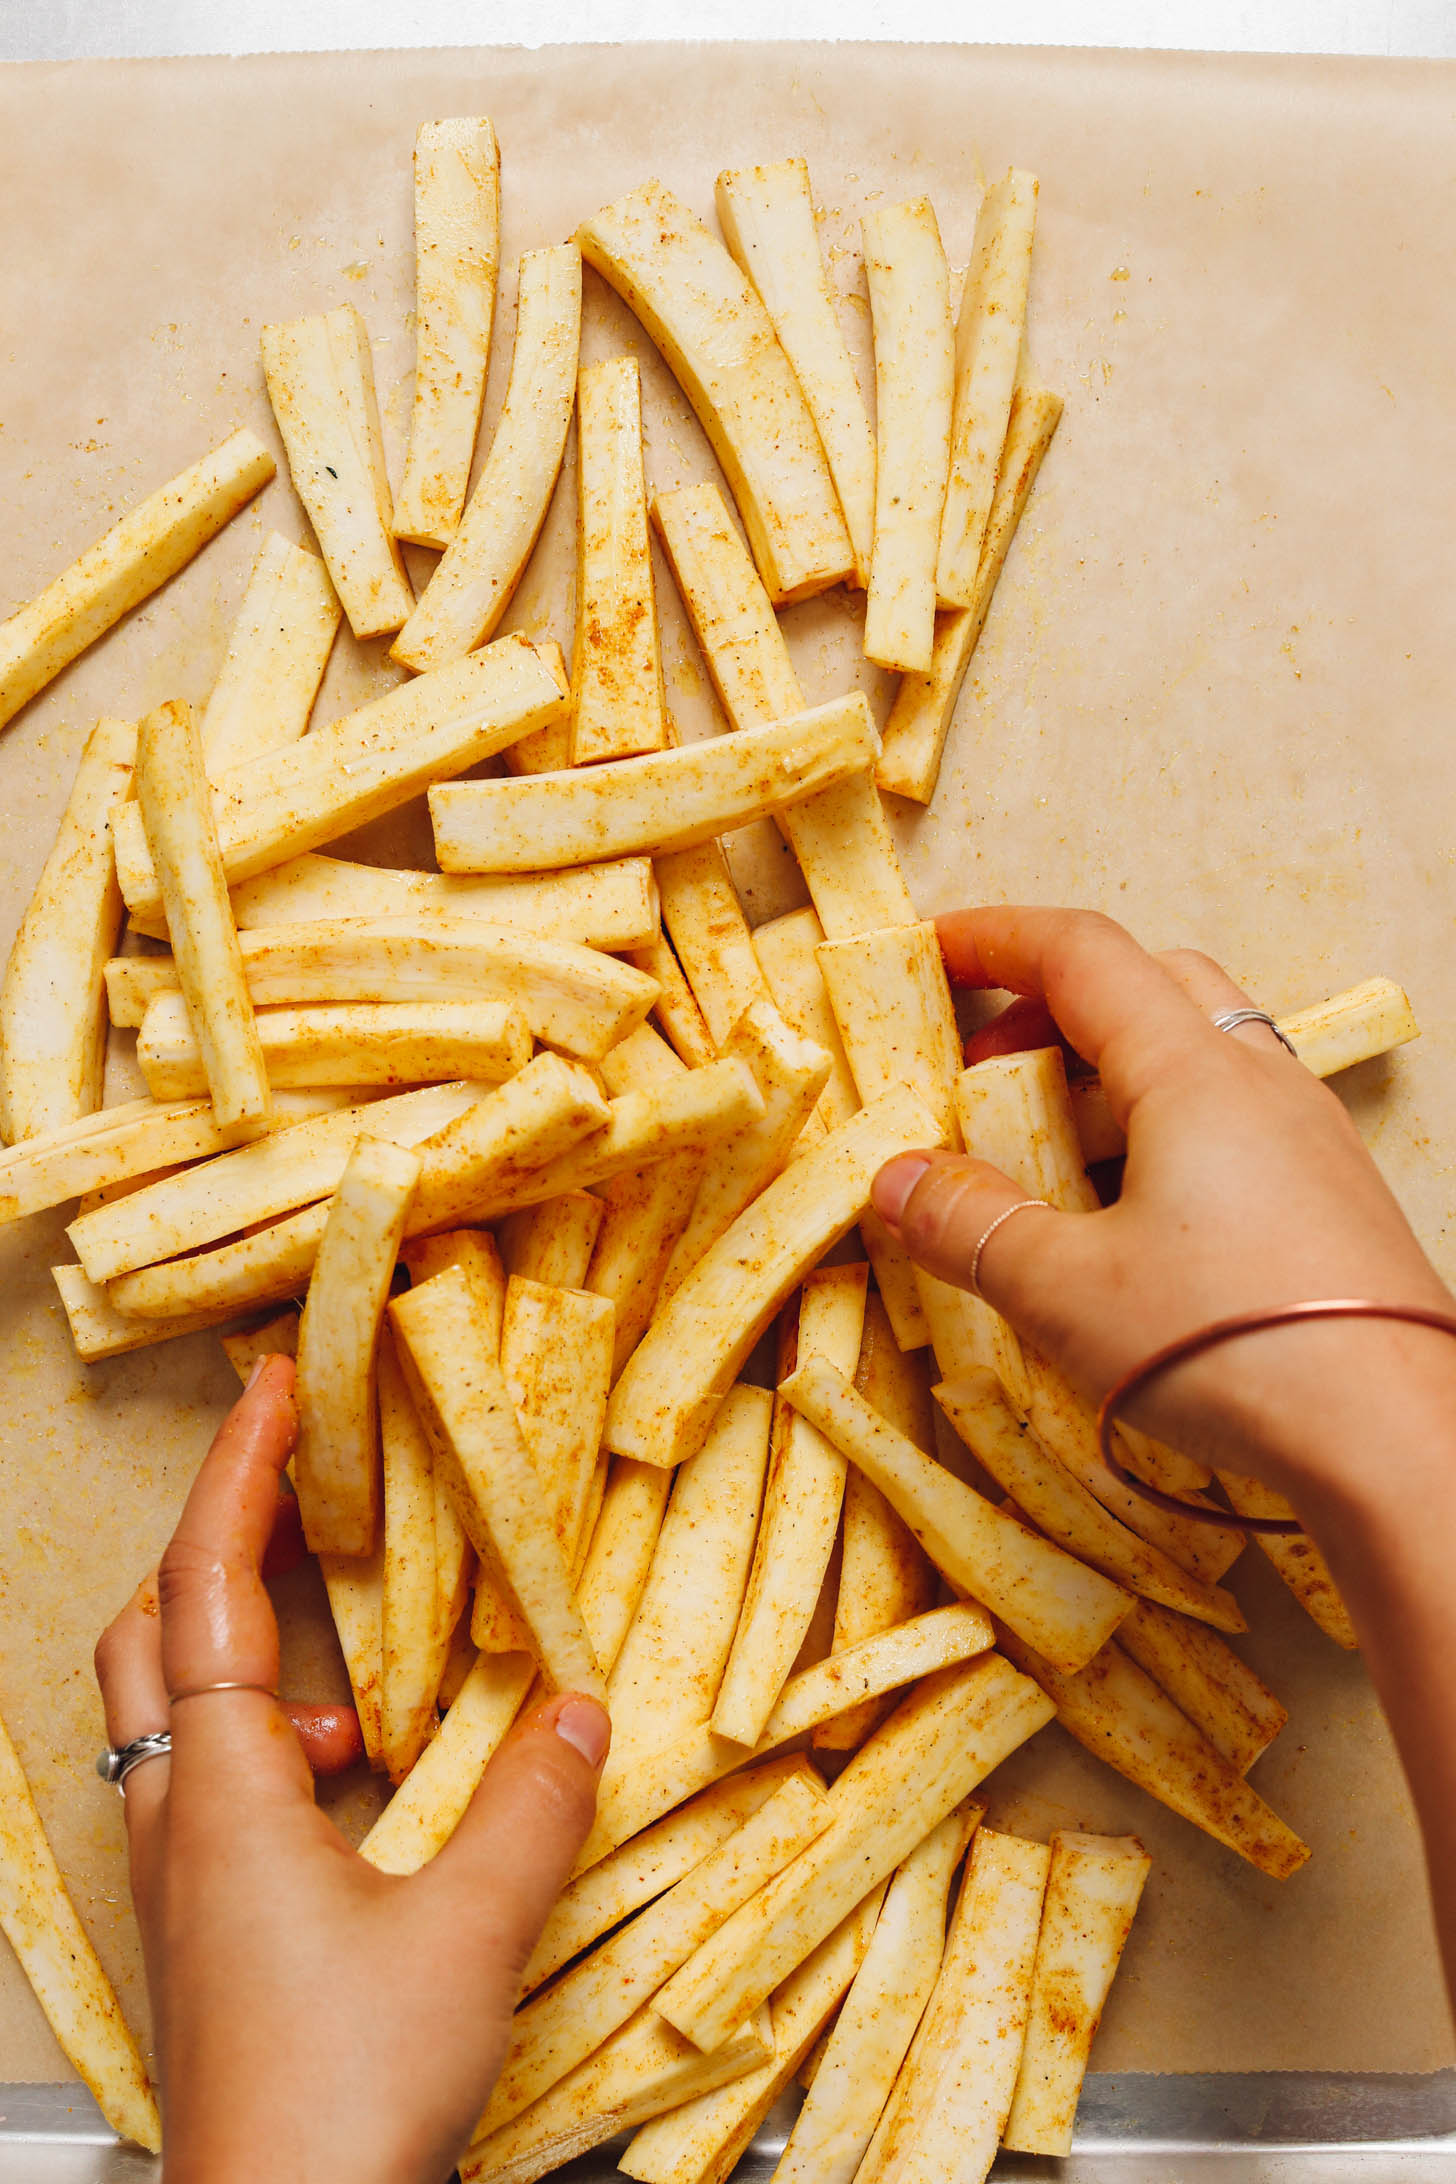 Tossing sliced parsnips in curry powder